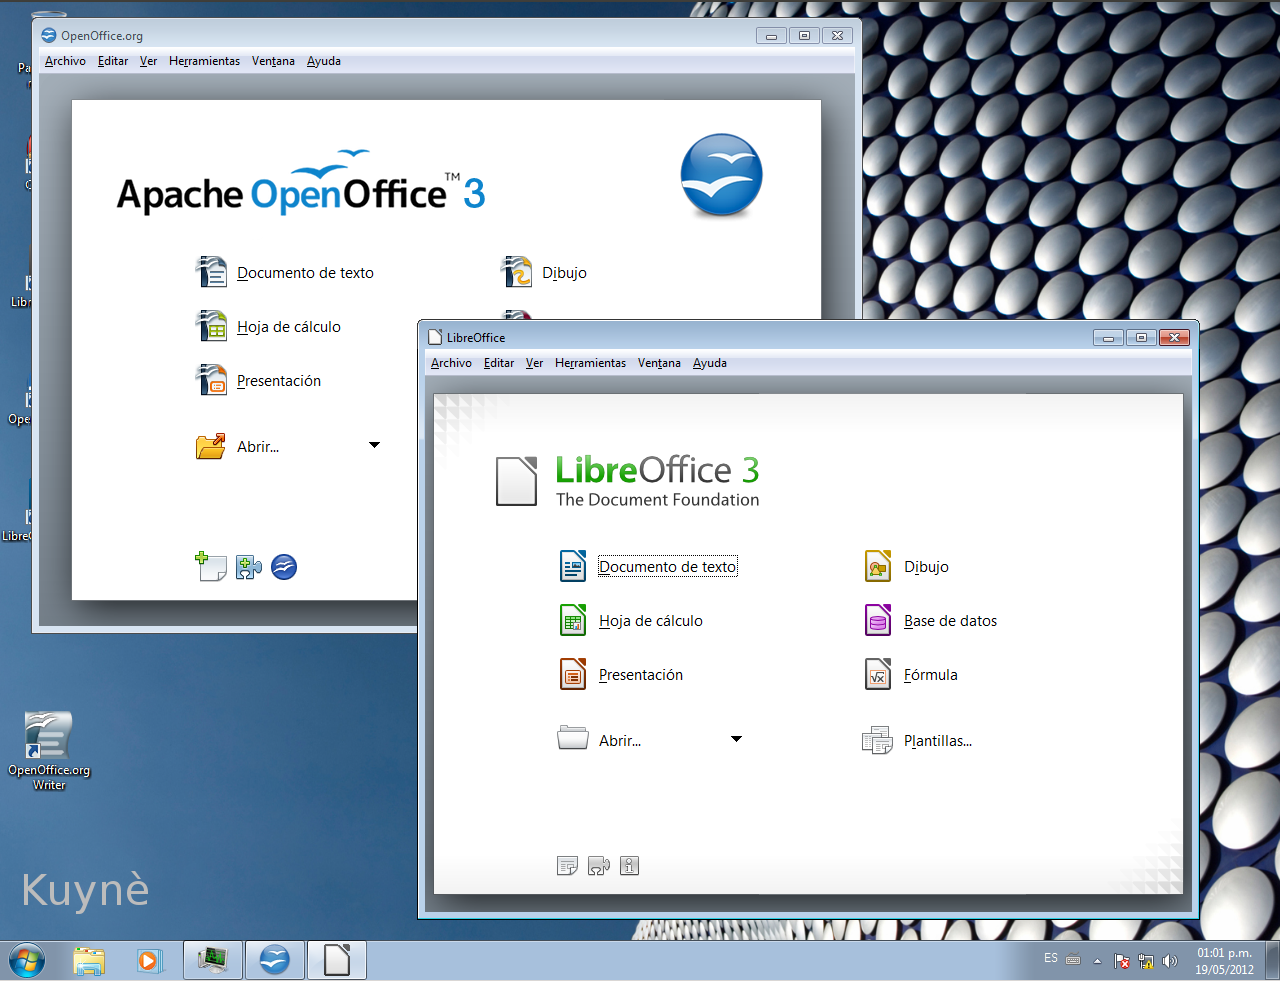 Kuyn libreoffice 3 5 vs apache openoffice 3 4 - Open office windows 7 gratuit francais ...